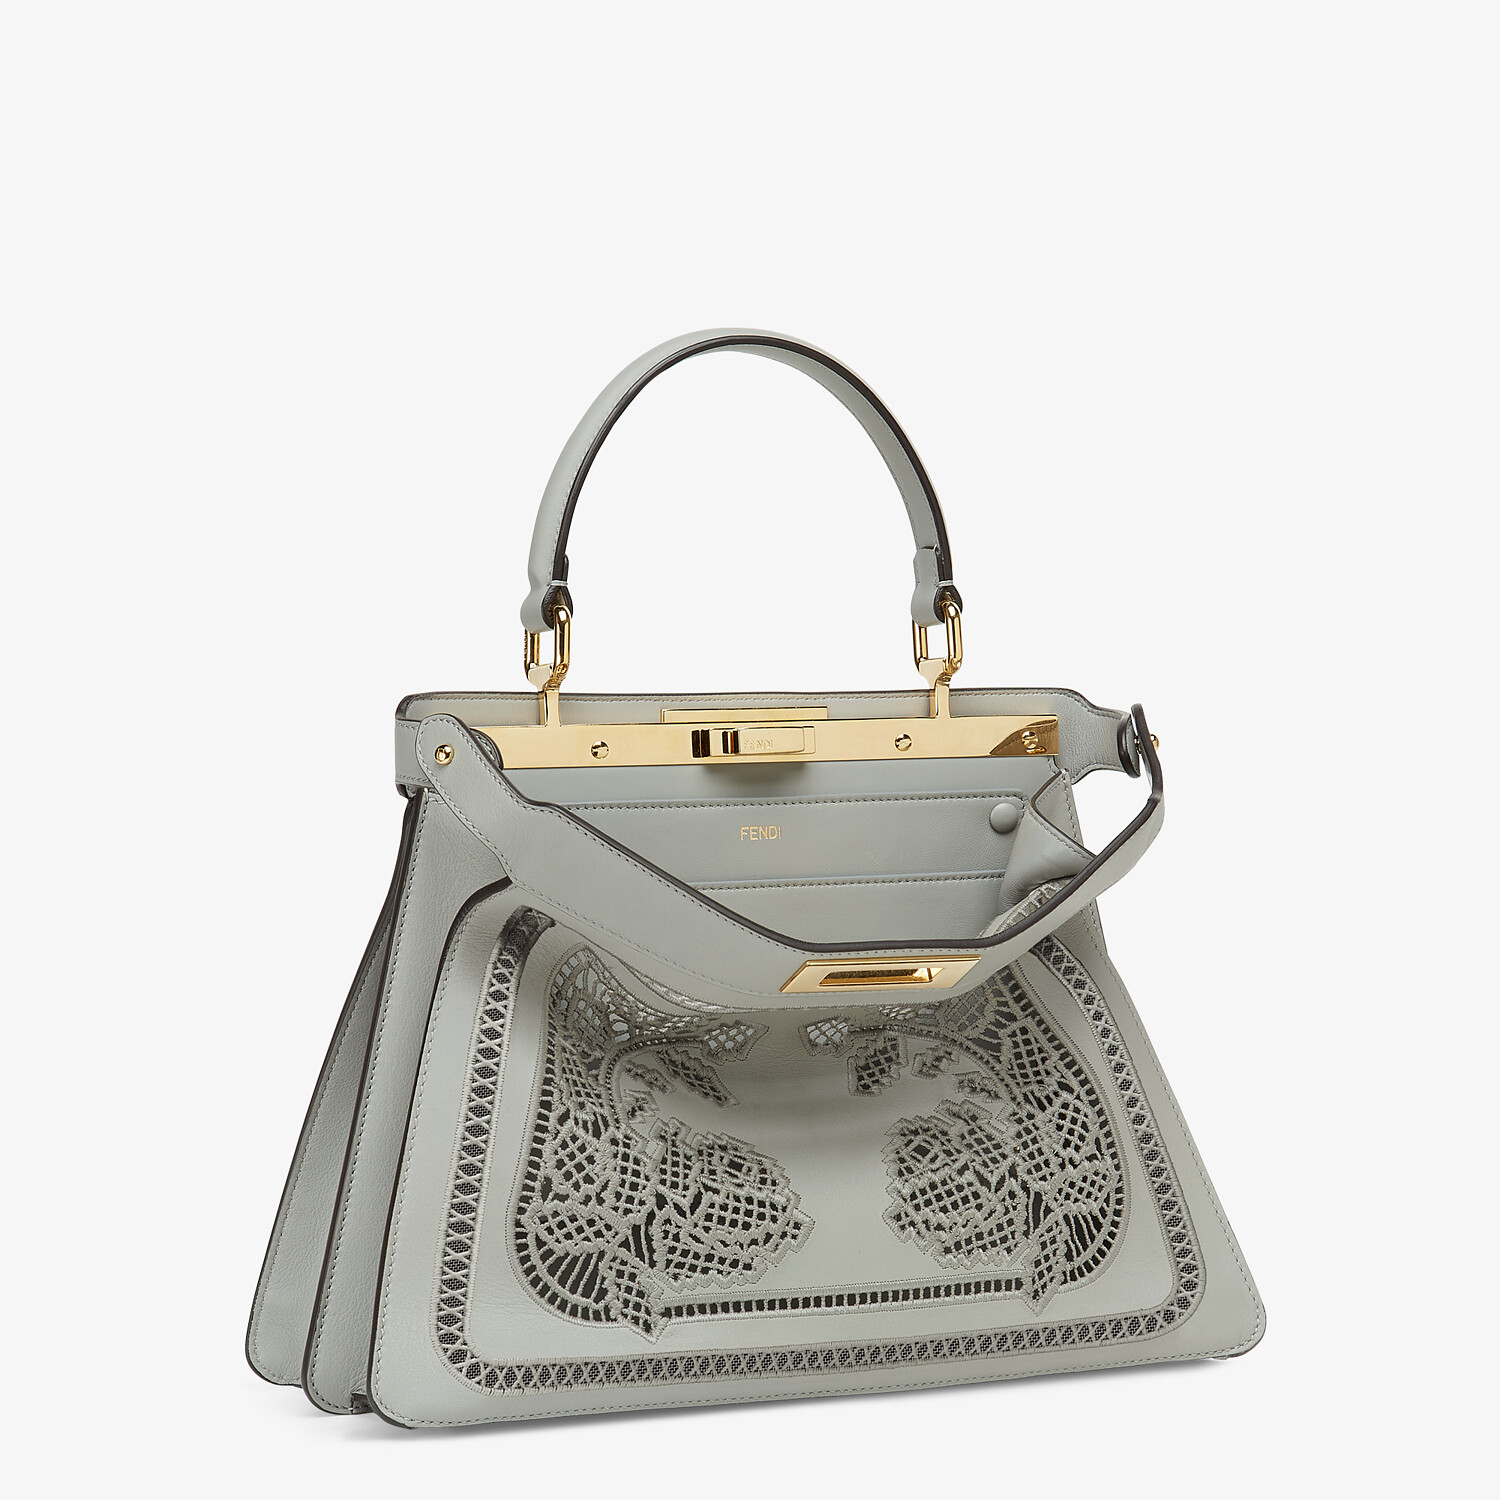 FENDI PEEKABOO ISEEU MEDIUM - Embroidered gray leather bag - view 5 detail